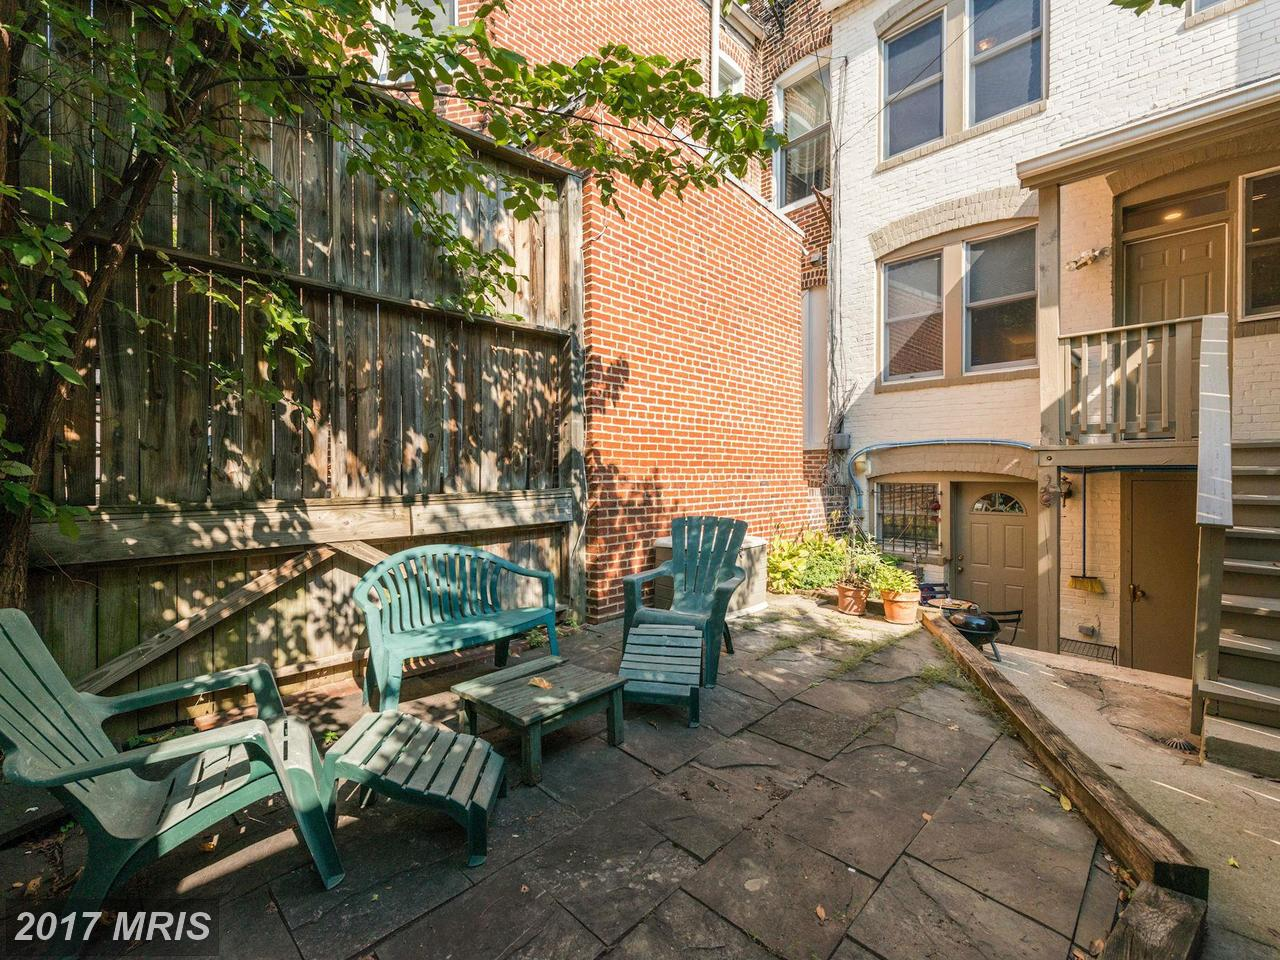 Additional photo for property listing at Colonial, Attach/Row Hse - WASHINGTON, DC 1738 SWANN ST NW Washington, District Of Columbia,20009 United States